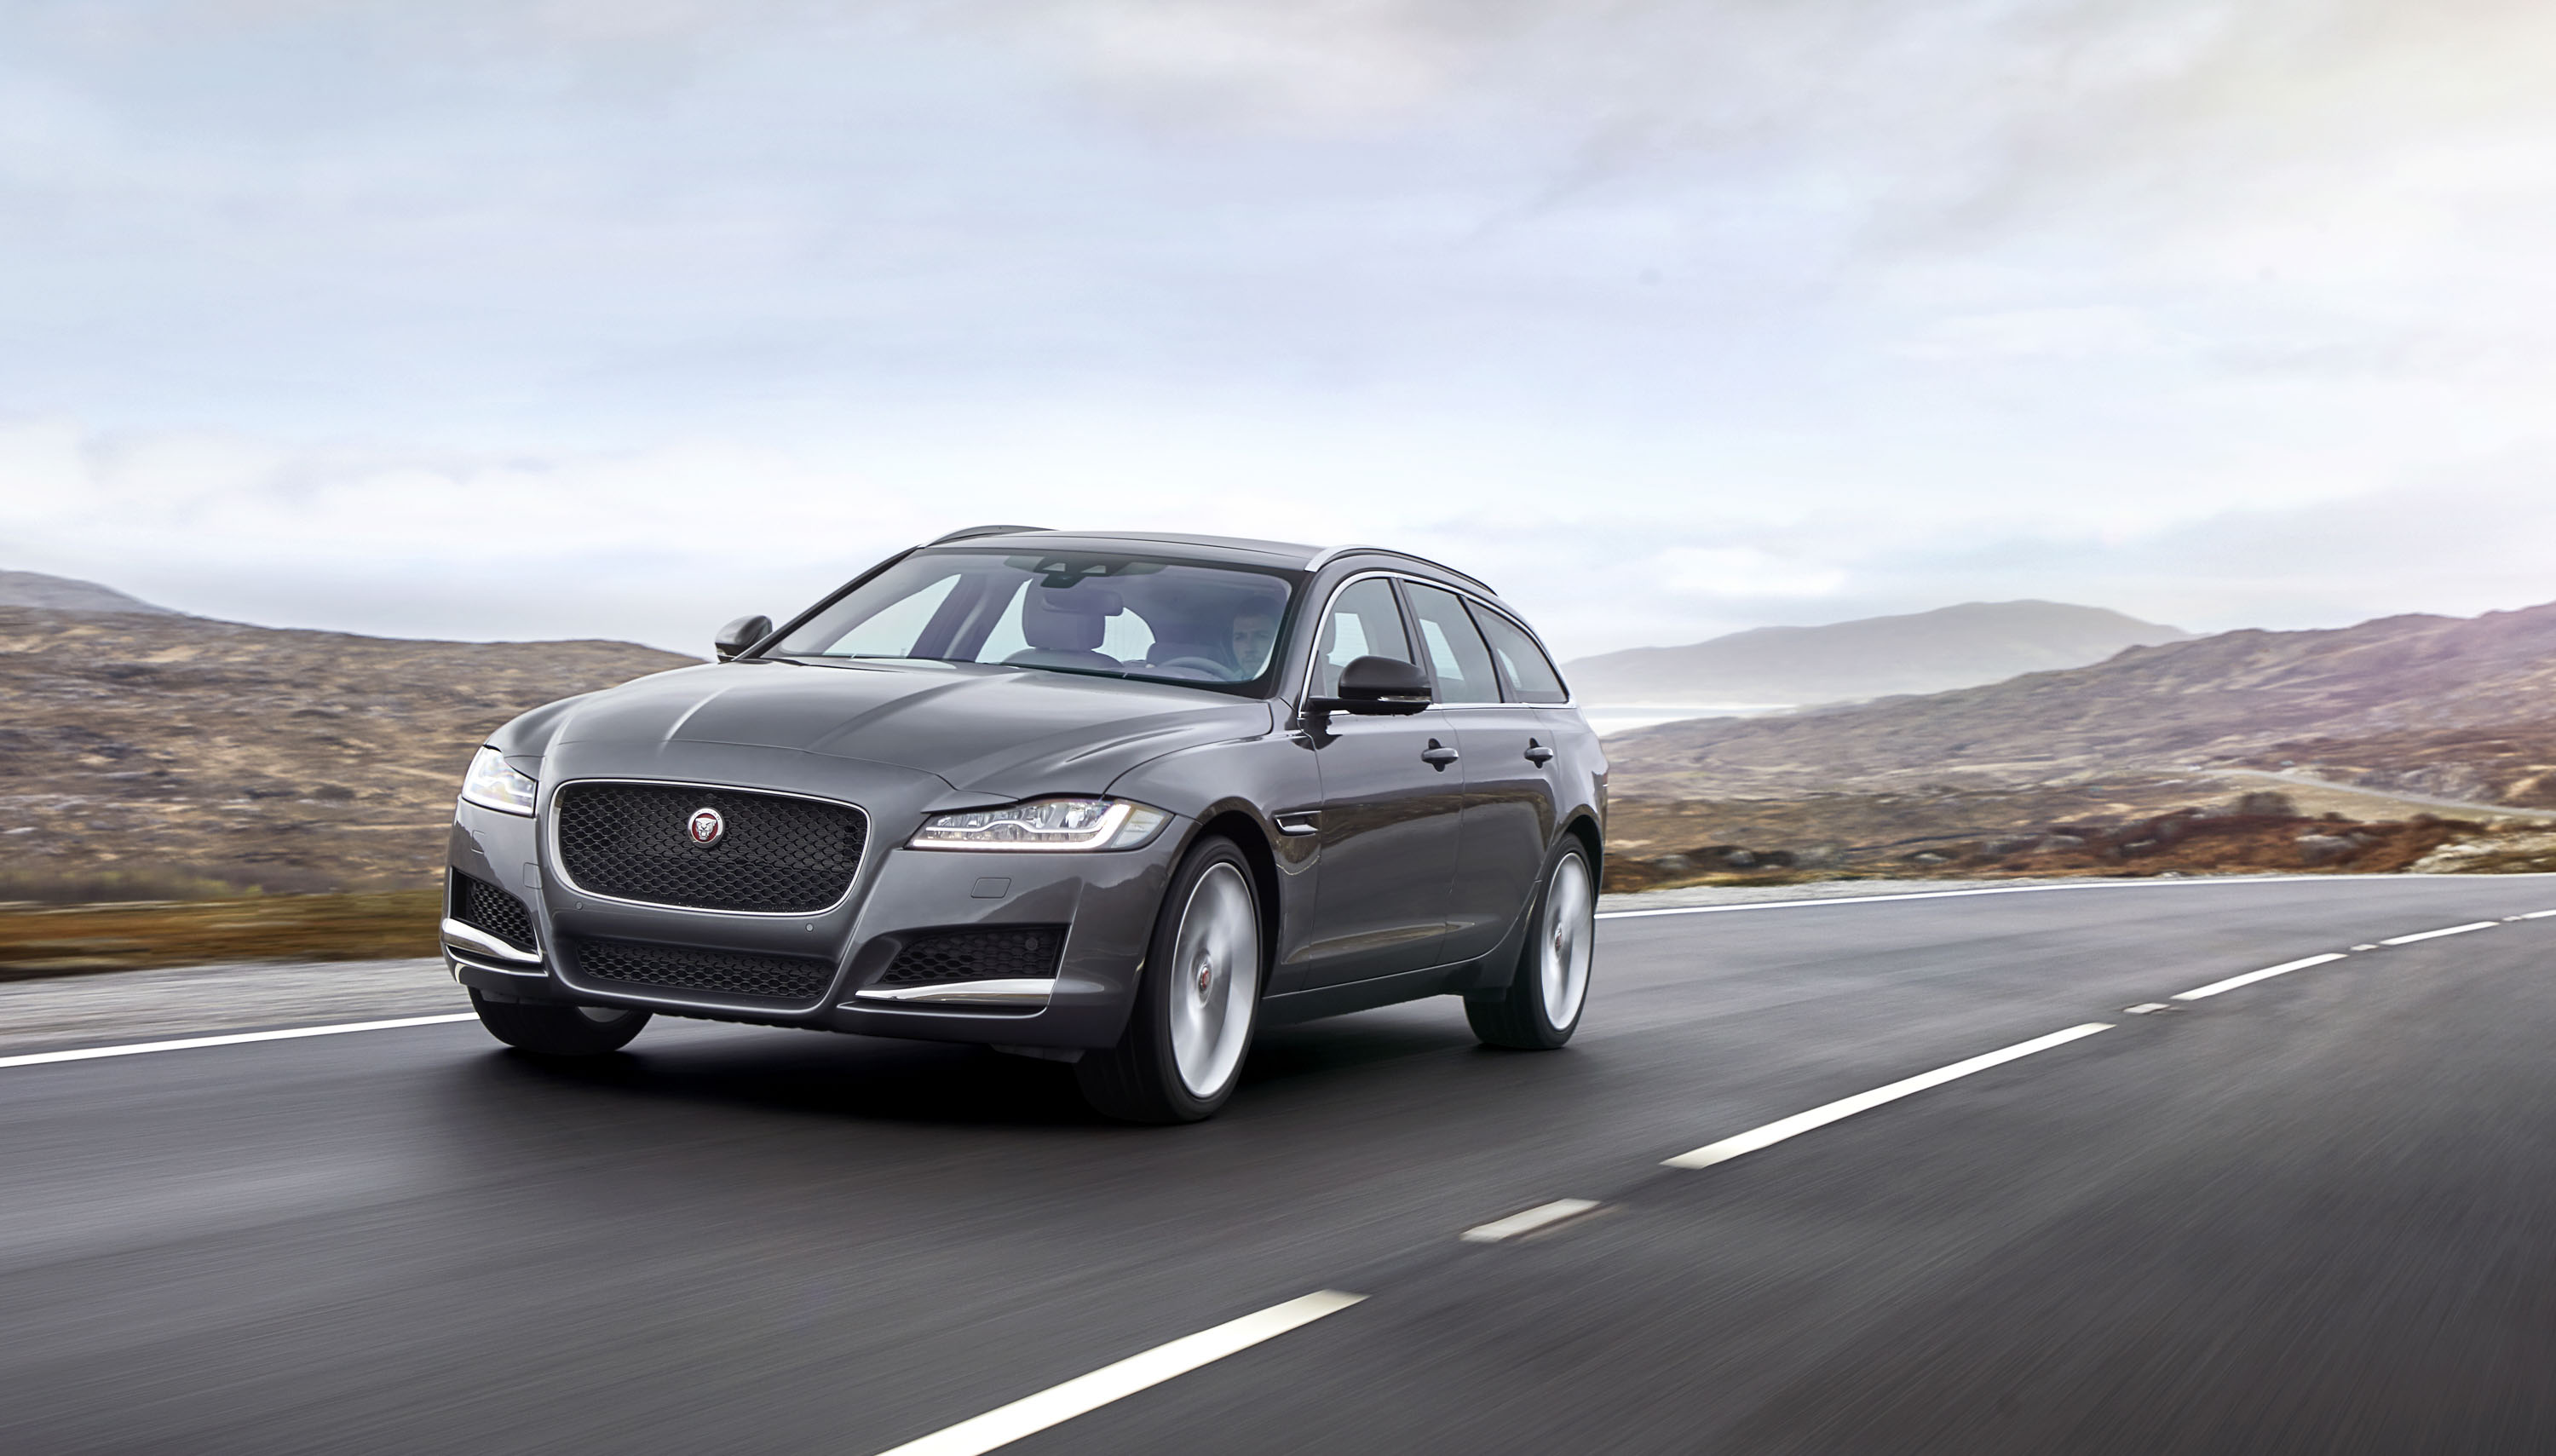 xf reviews sportbrake news jaguar sale with supercharged msrp for used ratings